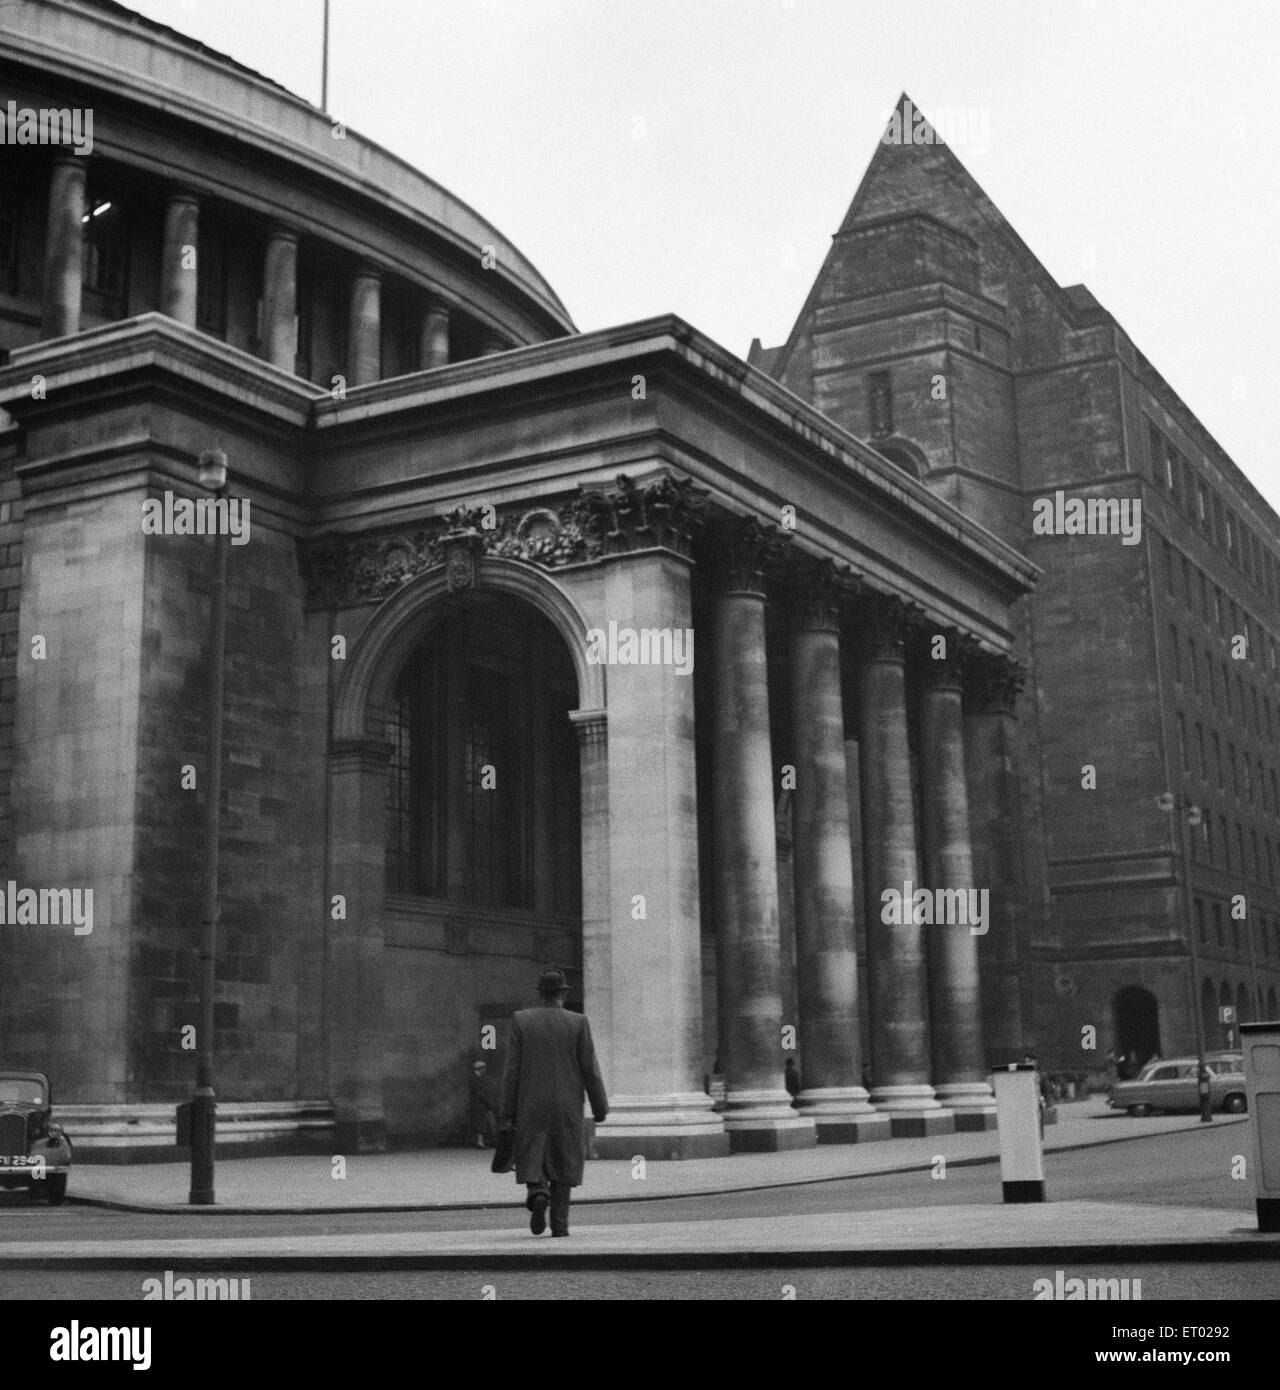 Manchester Central Library, 4th April 1953. - Stock Image